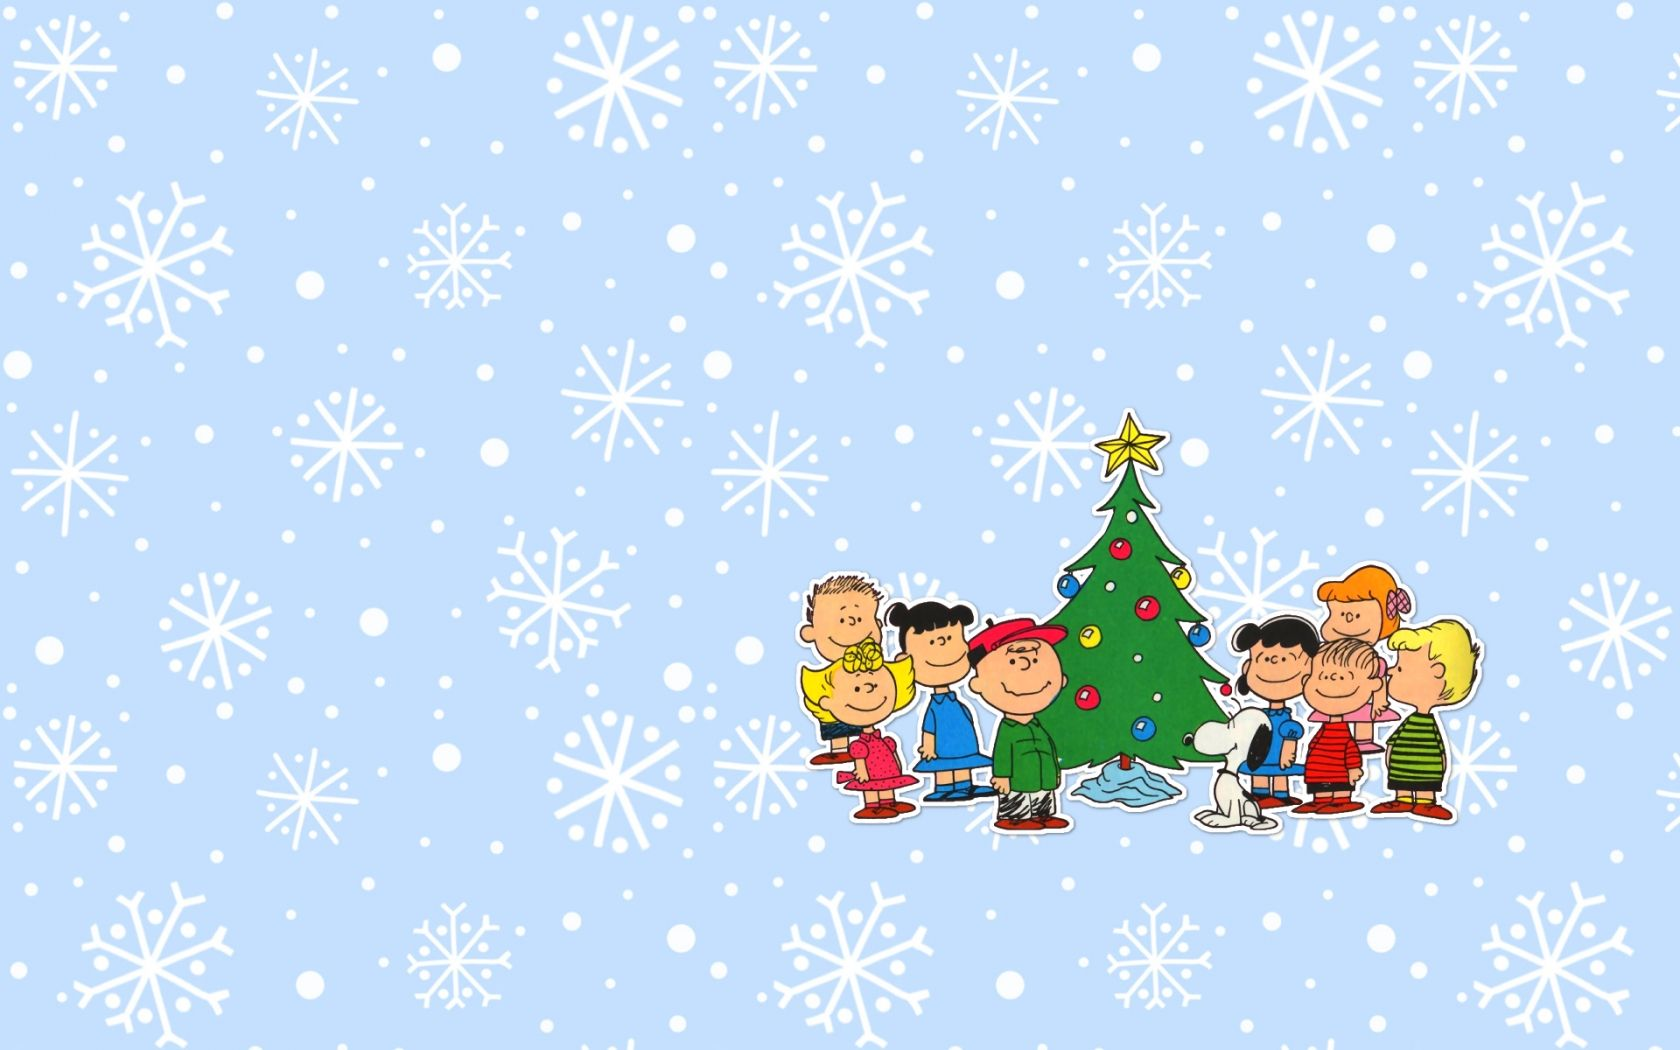 charlie brown christmas wallpaper background | wallpaper | pinterest